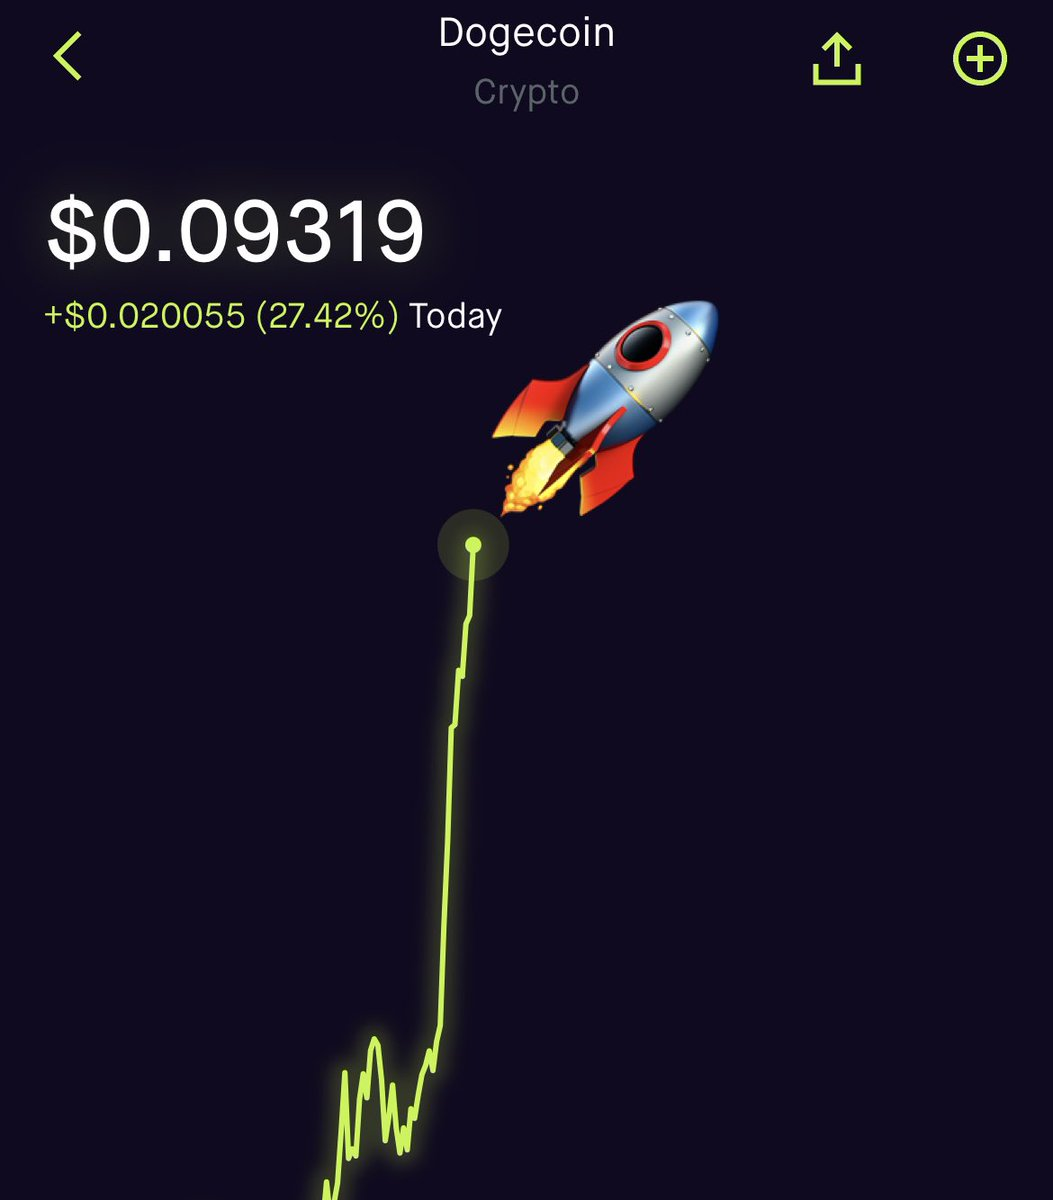 We have liftoff! #Dogecoins #doge $doge #DogecoinToTheMoon #dogetothemoon https://t.co/UvVtACEhzR